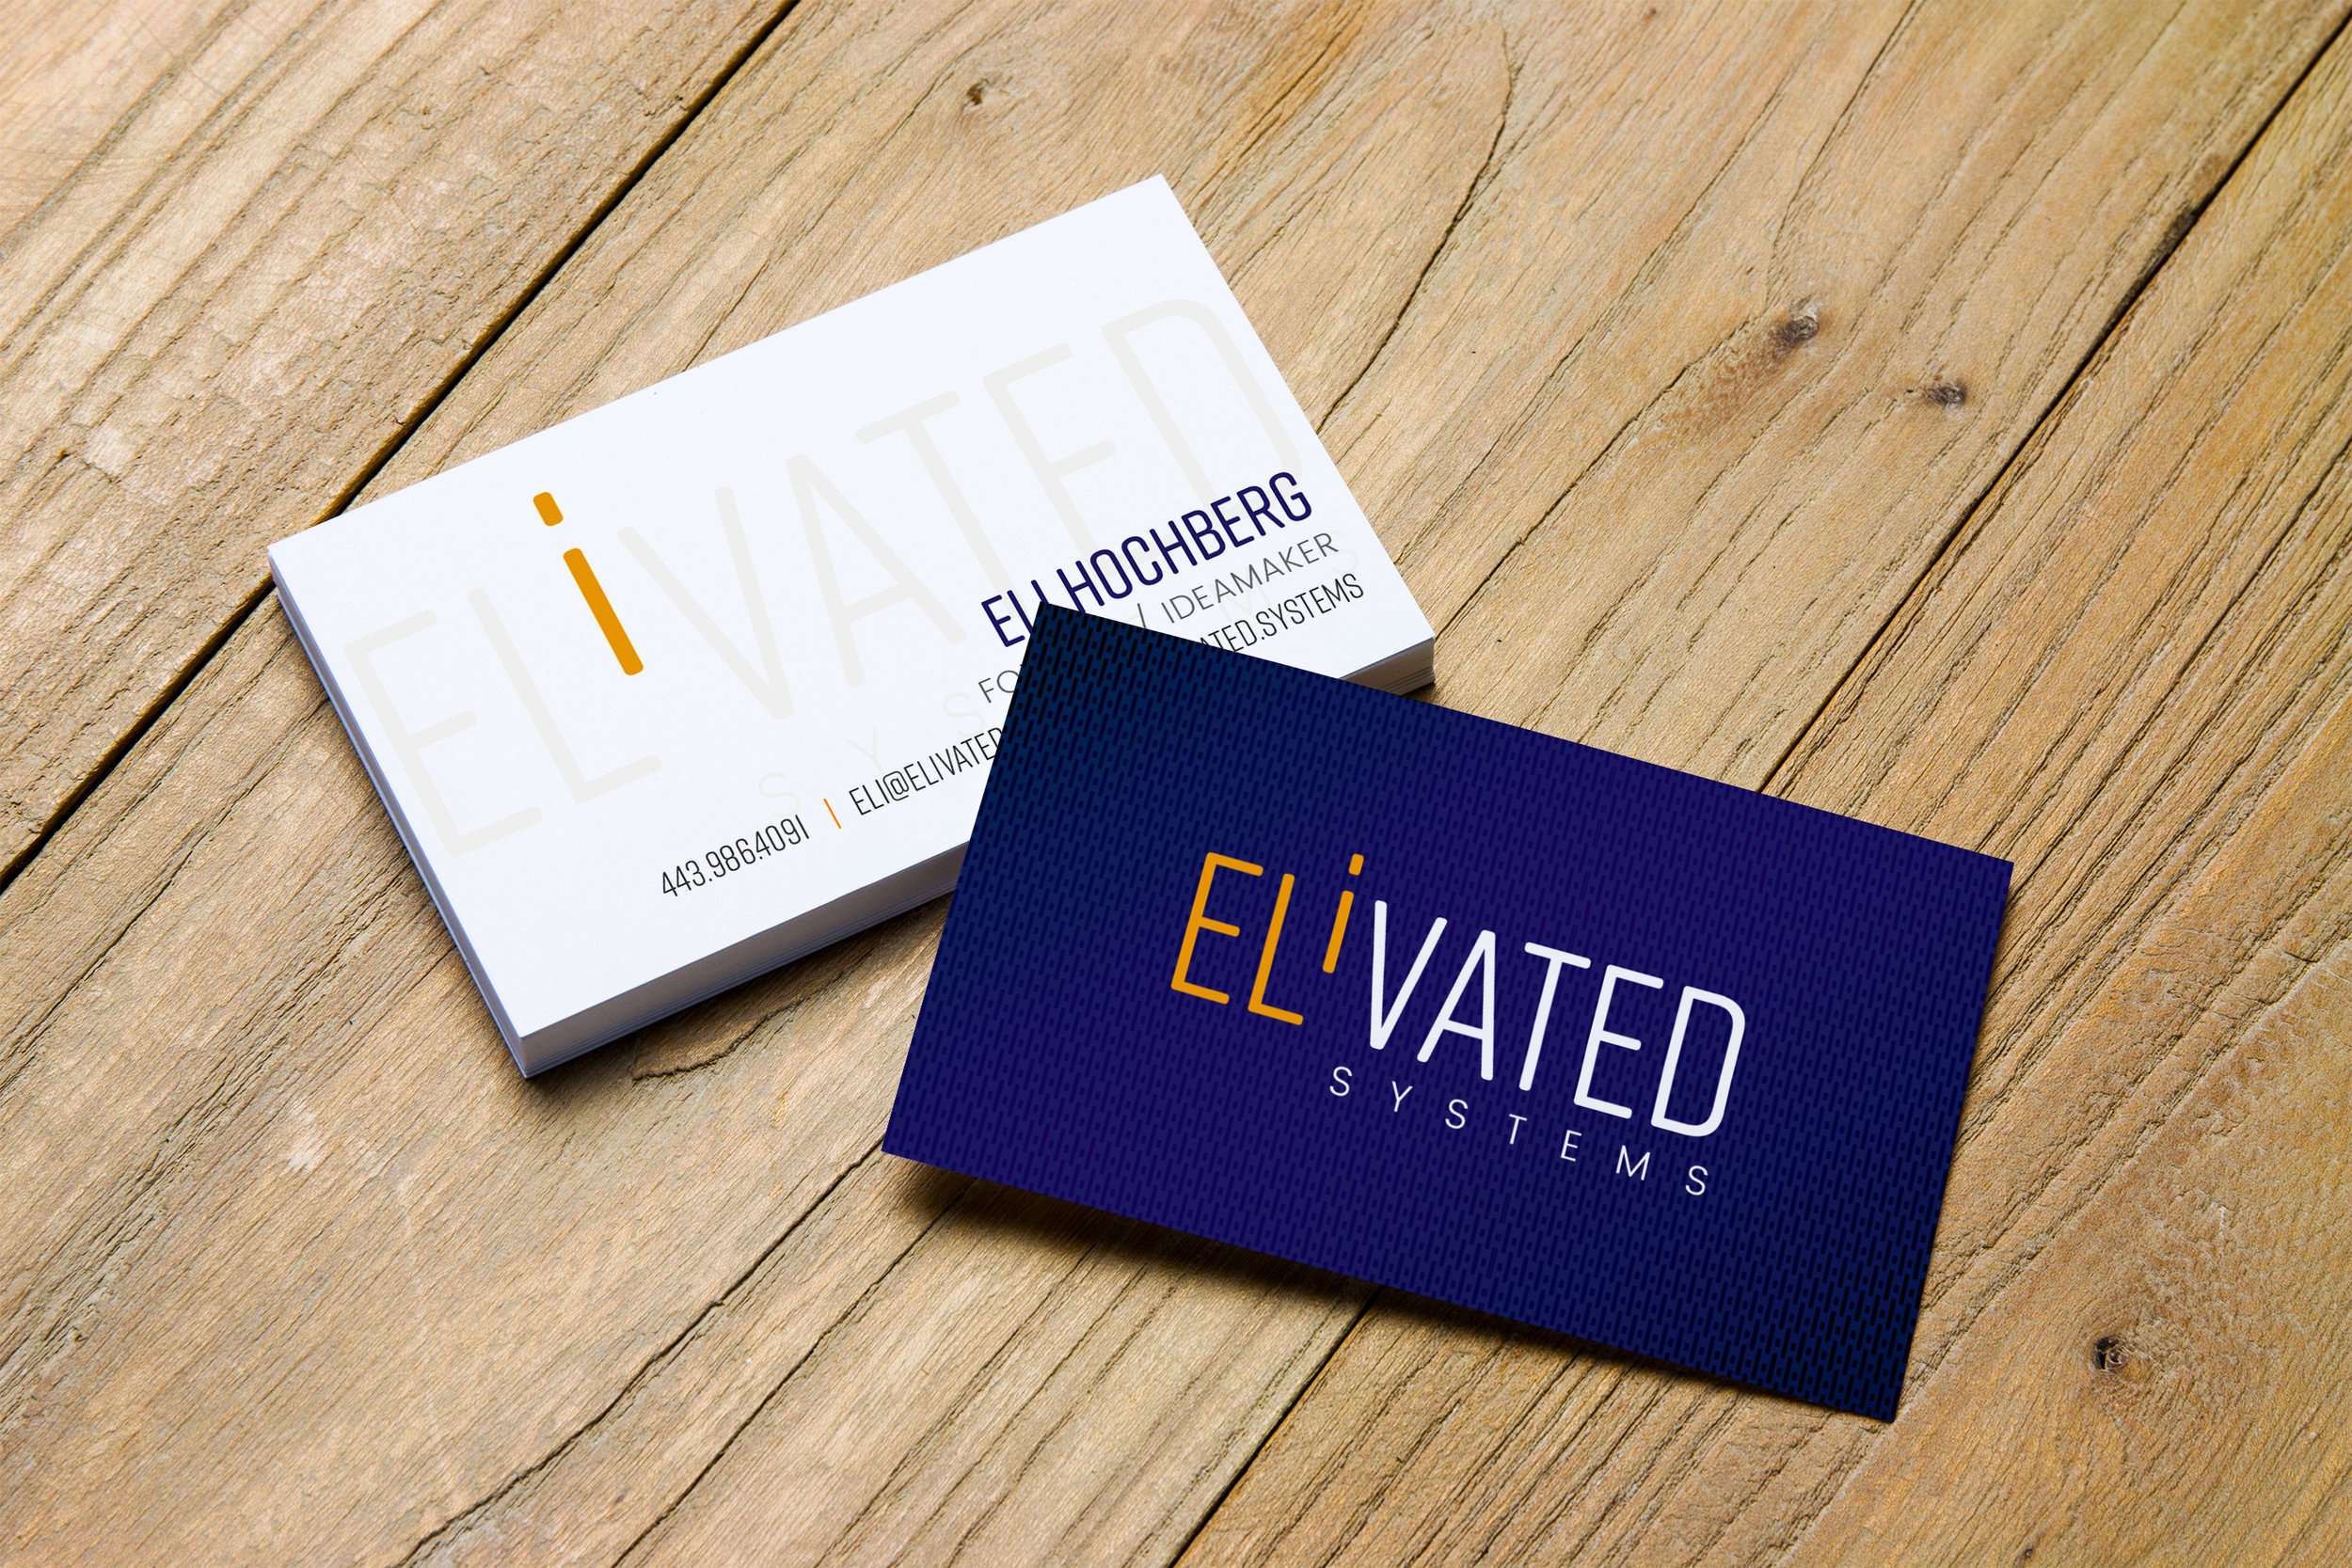 ELiVATED SYSTEMS - Logo & Business Card Design